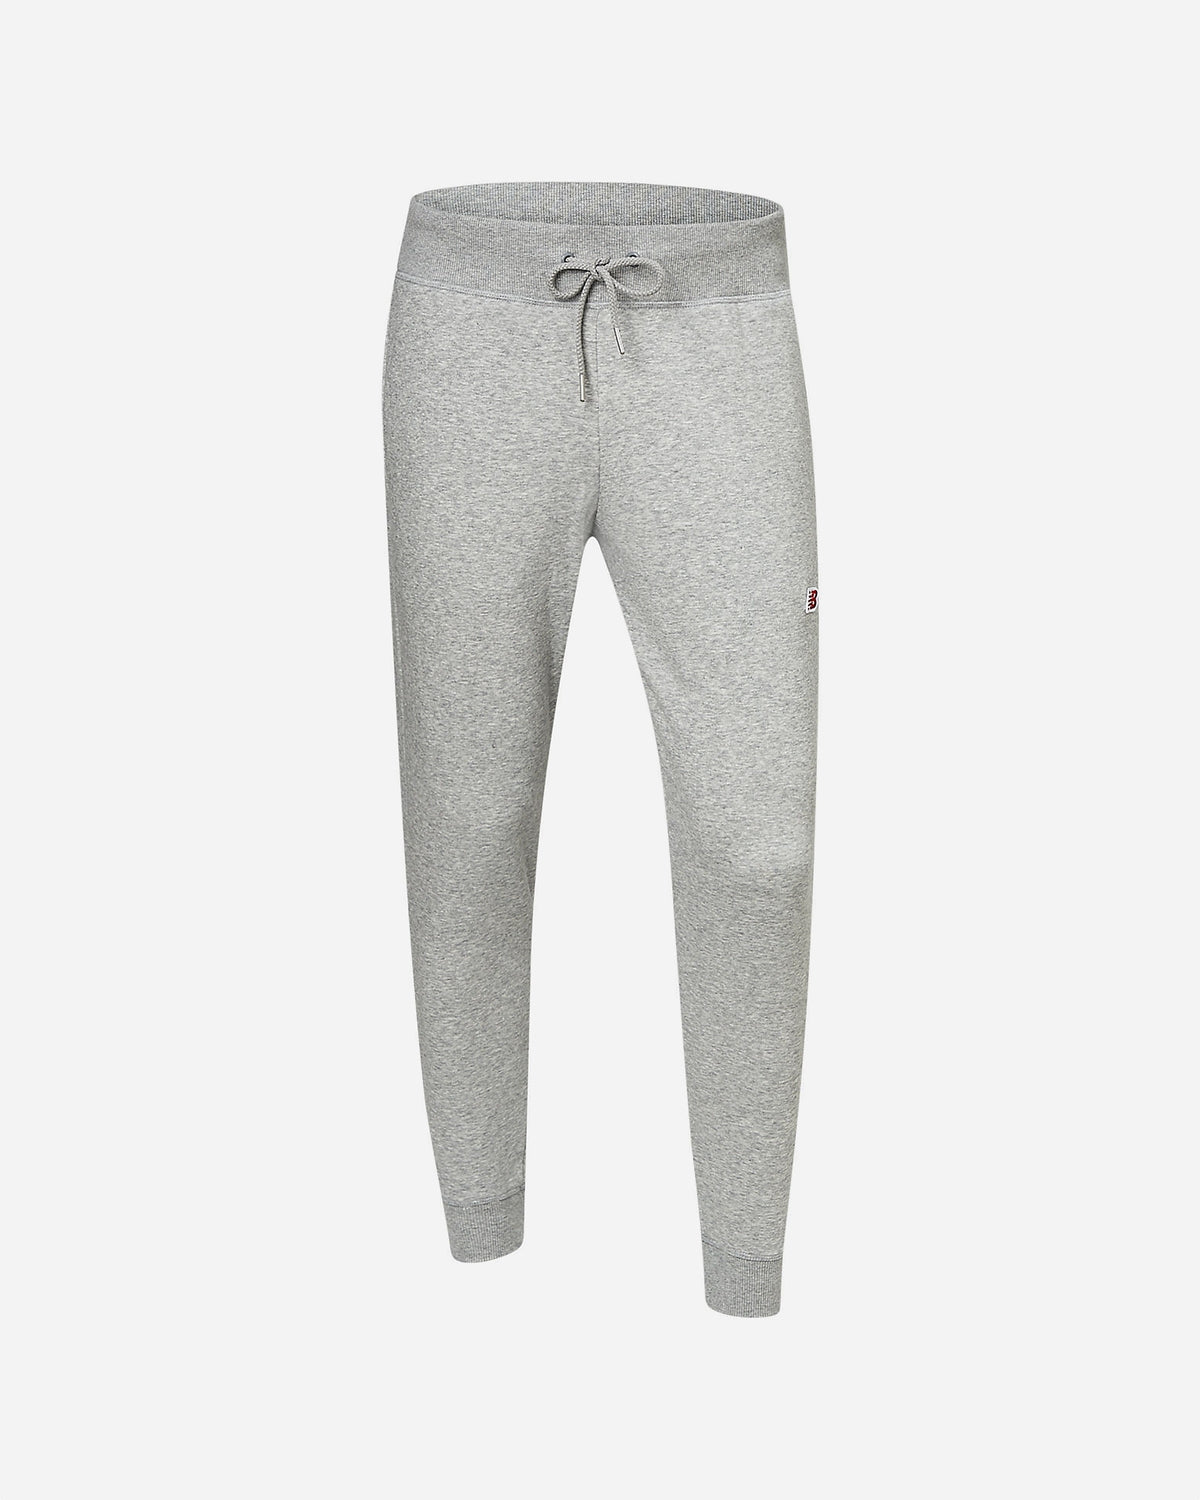 NB Small Pack Pant - Athletic Grey